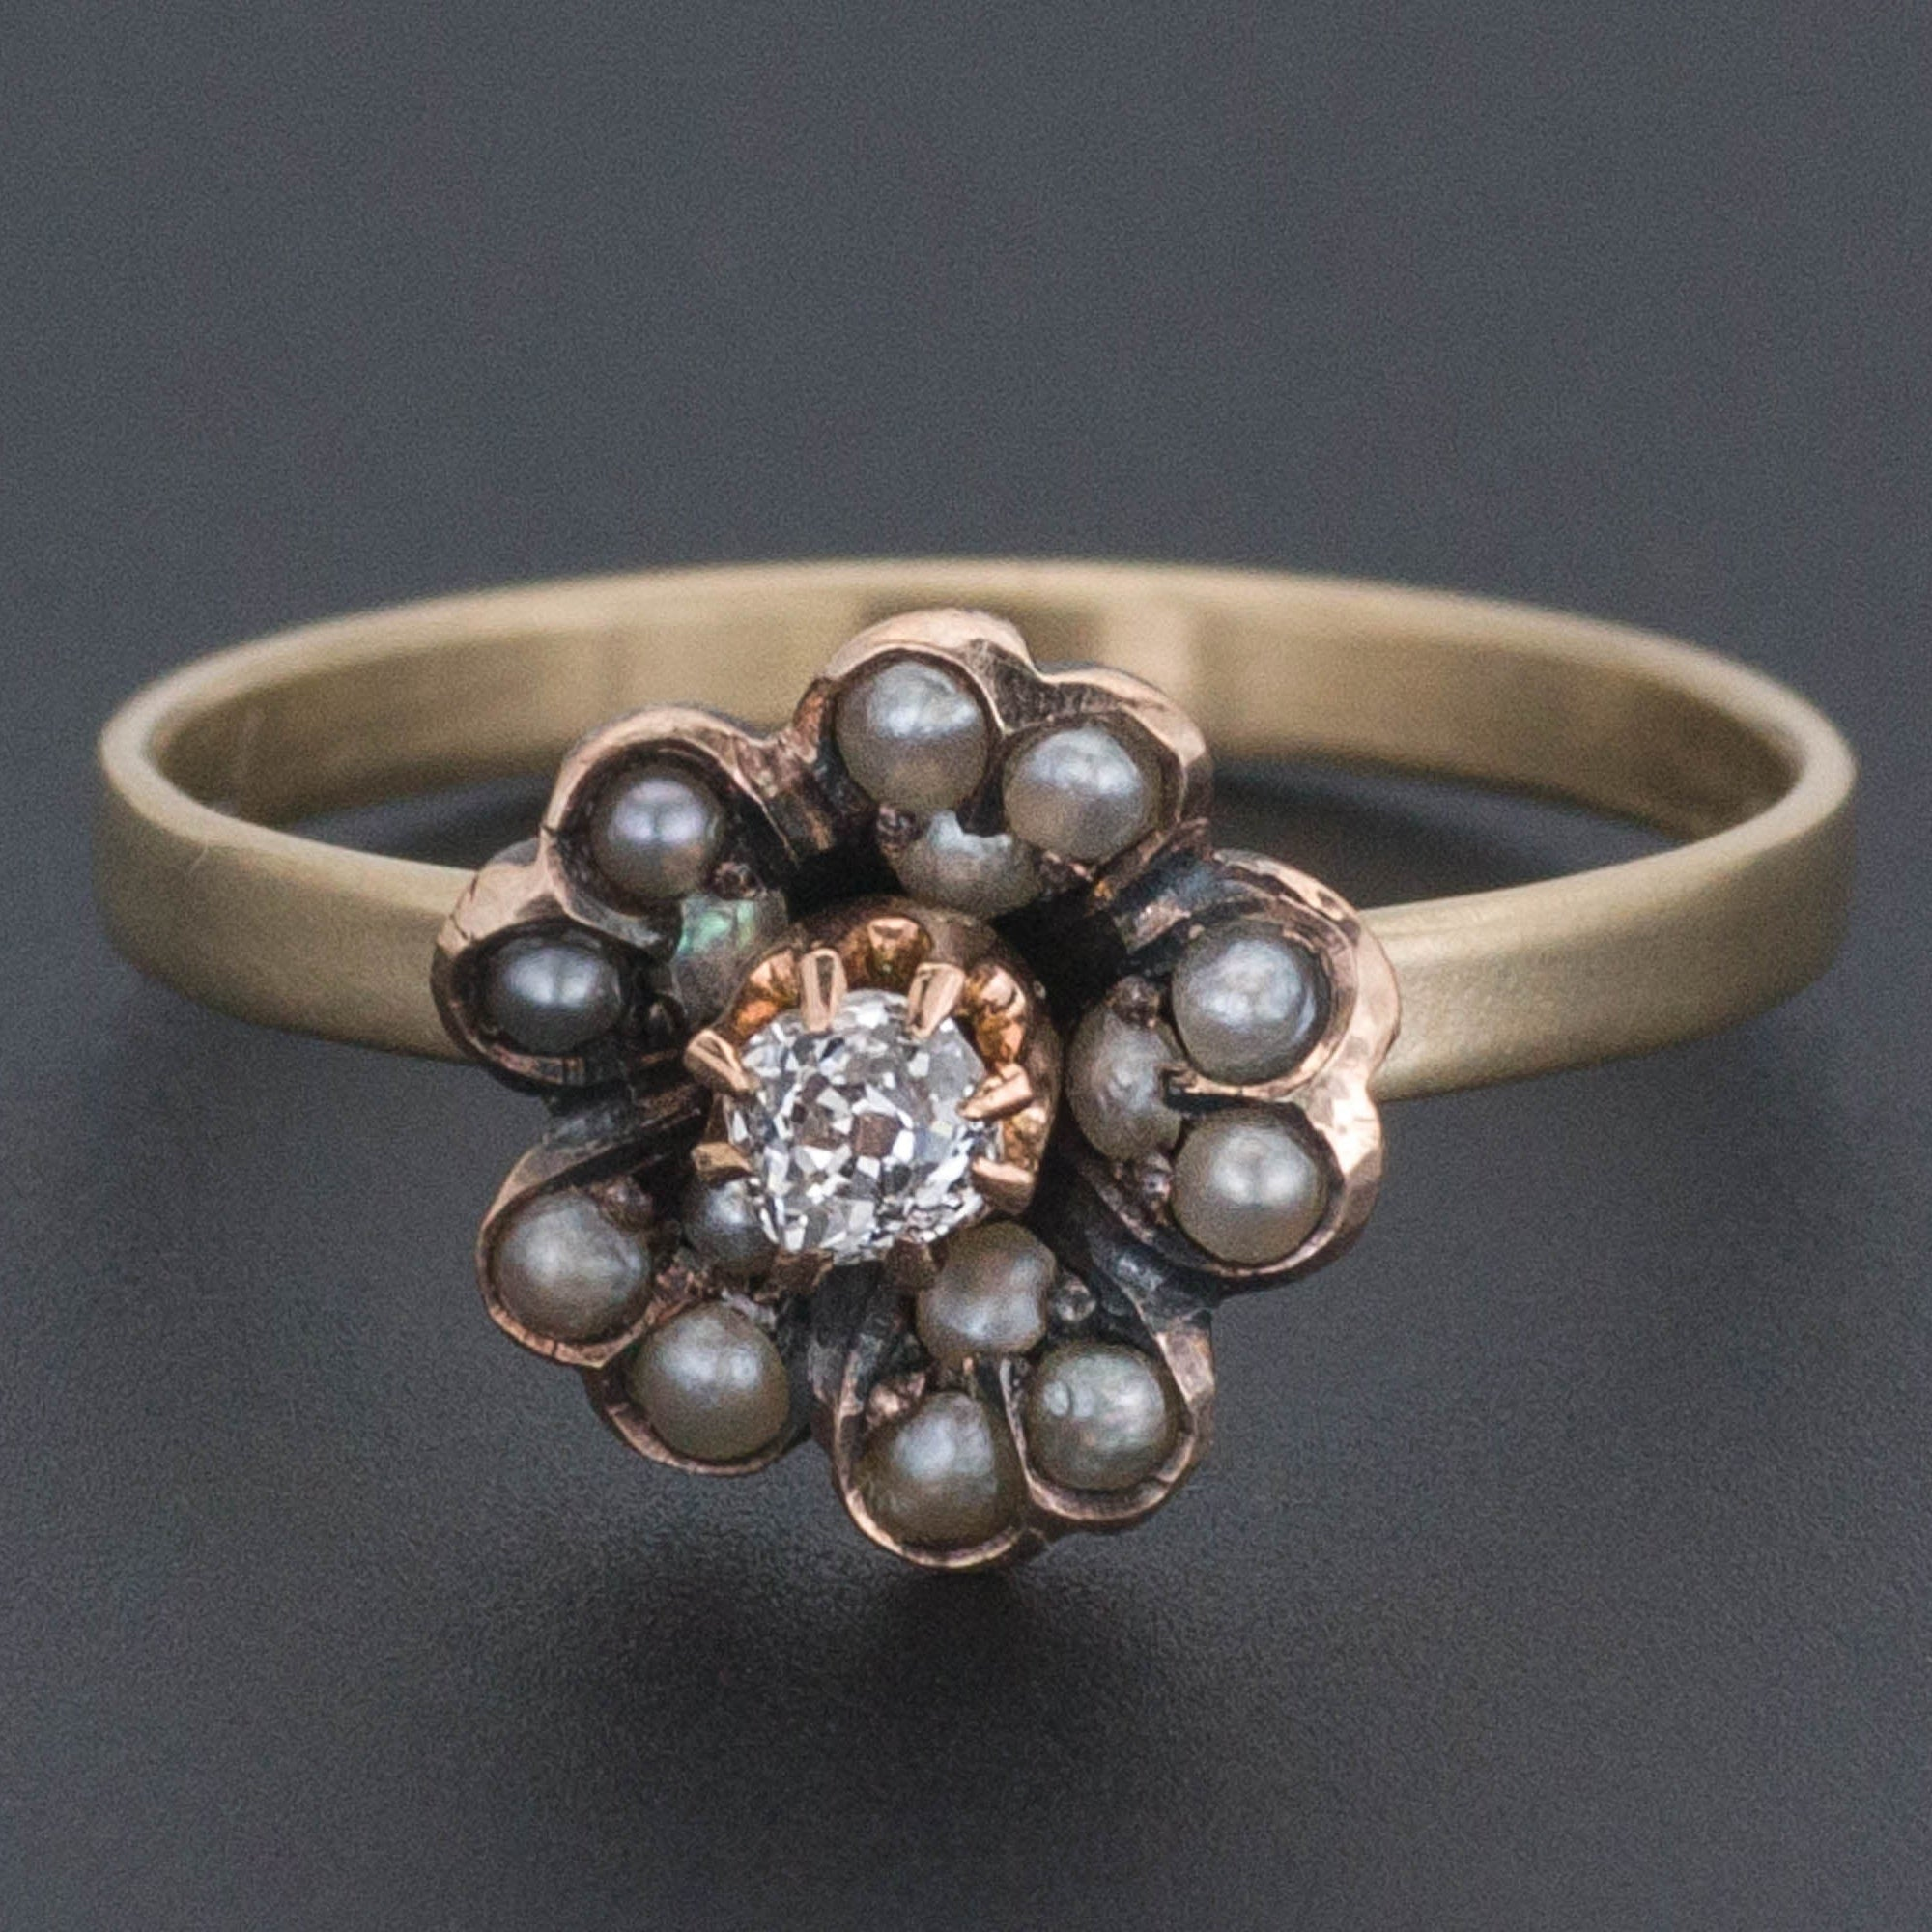 Diamond and Pearl Flower Ring | Antique Pin Conversion Ring | Pearl Ring | 14k Gold & Silver Ring